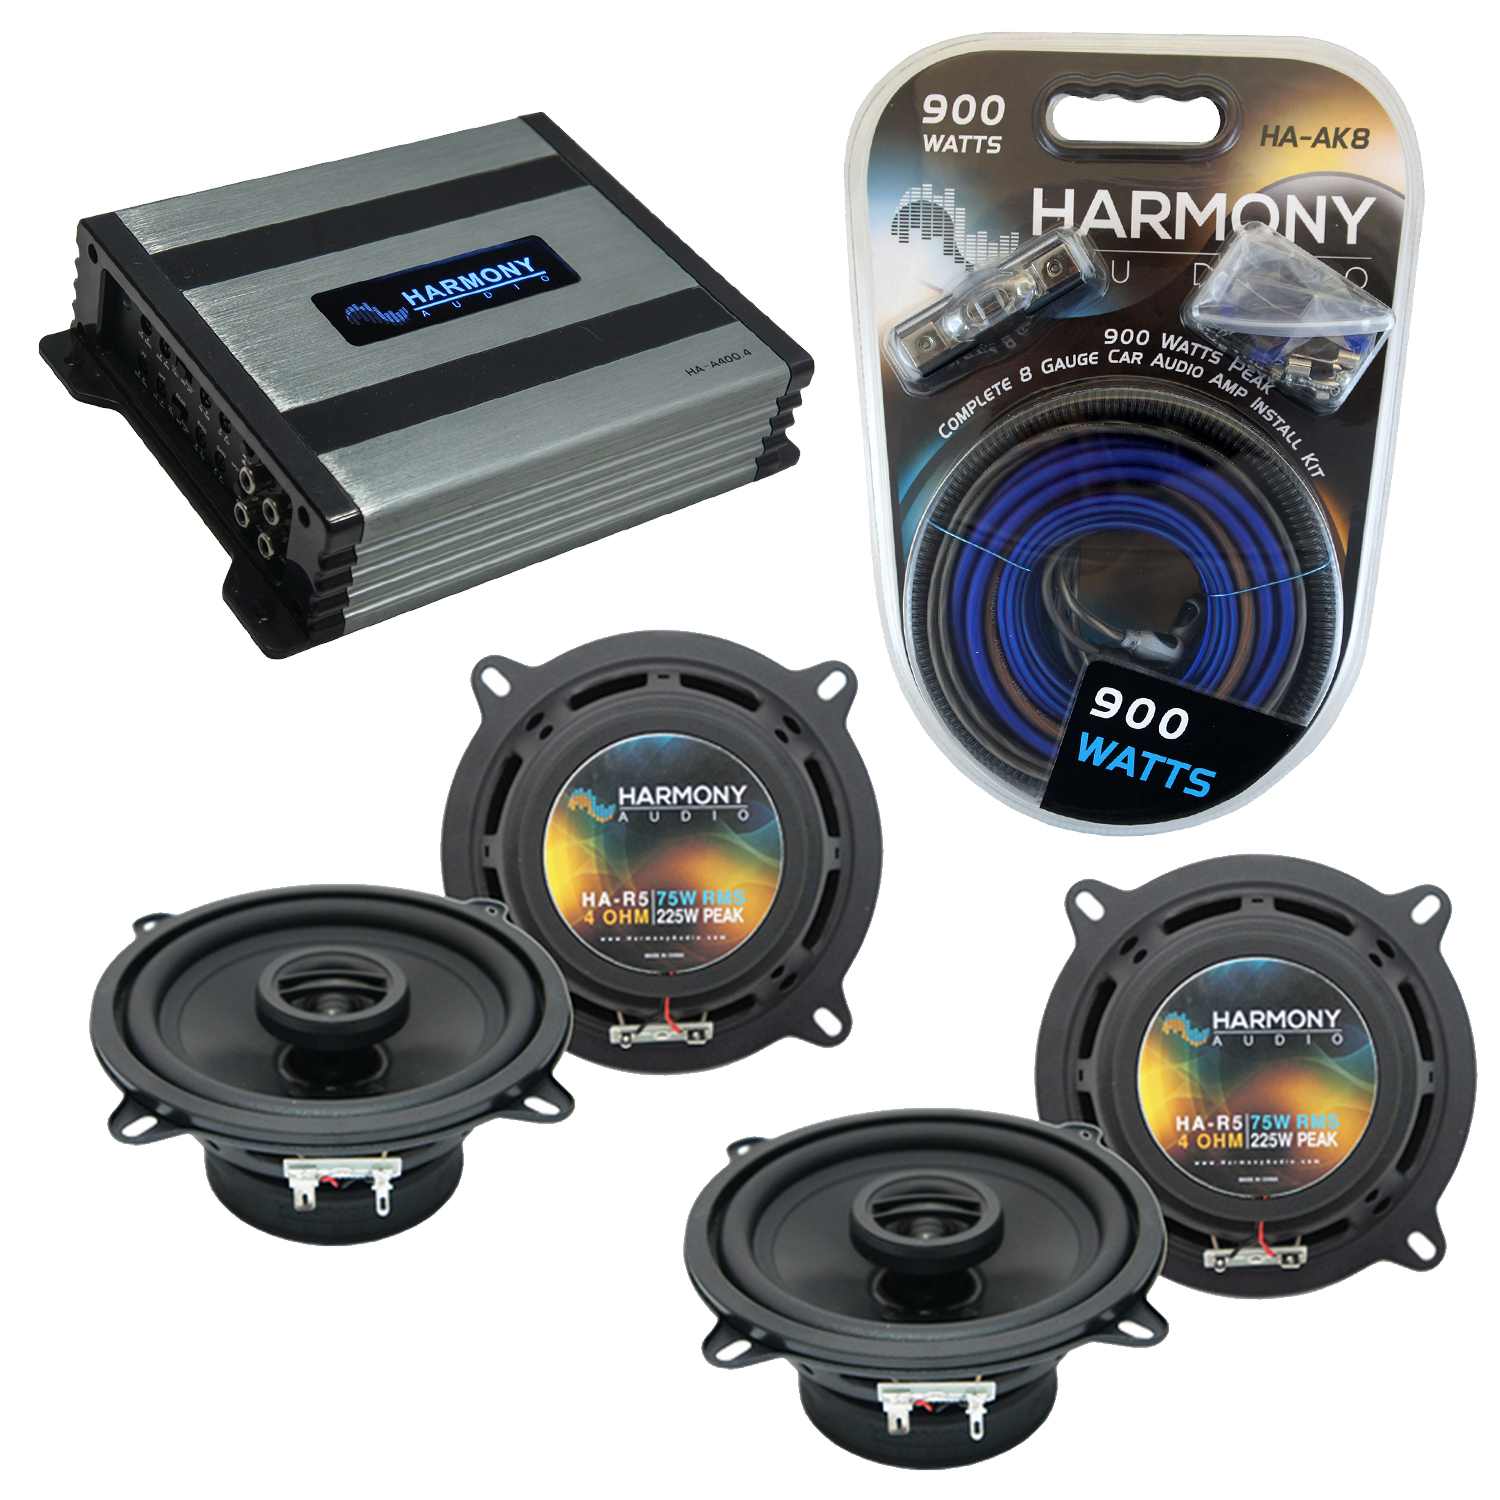 Compatible with Lexus IS 2006-2014 OEM Speaker Replacement Harmony (2) R5 & Harmony HA-A400.4 Amplifier